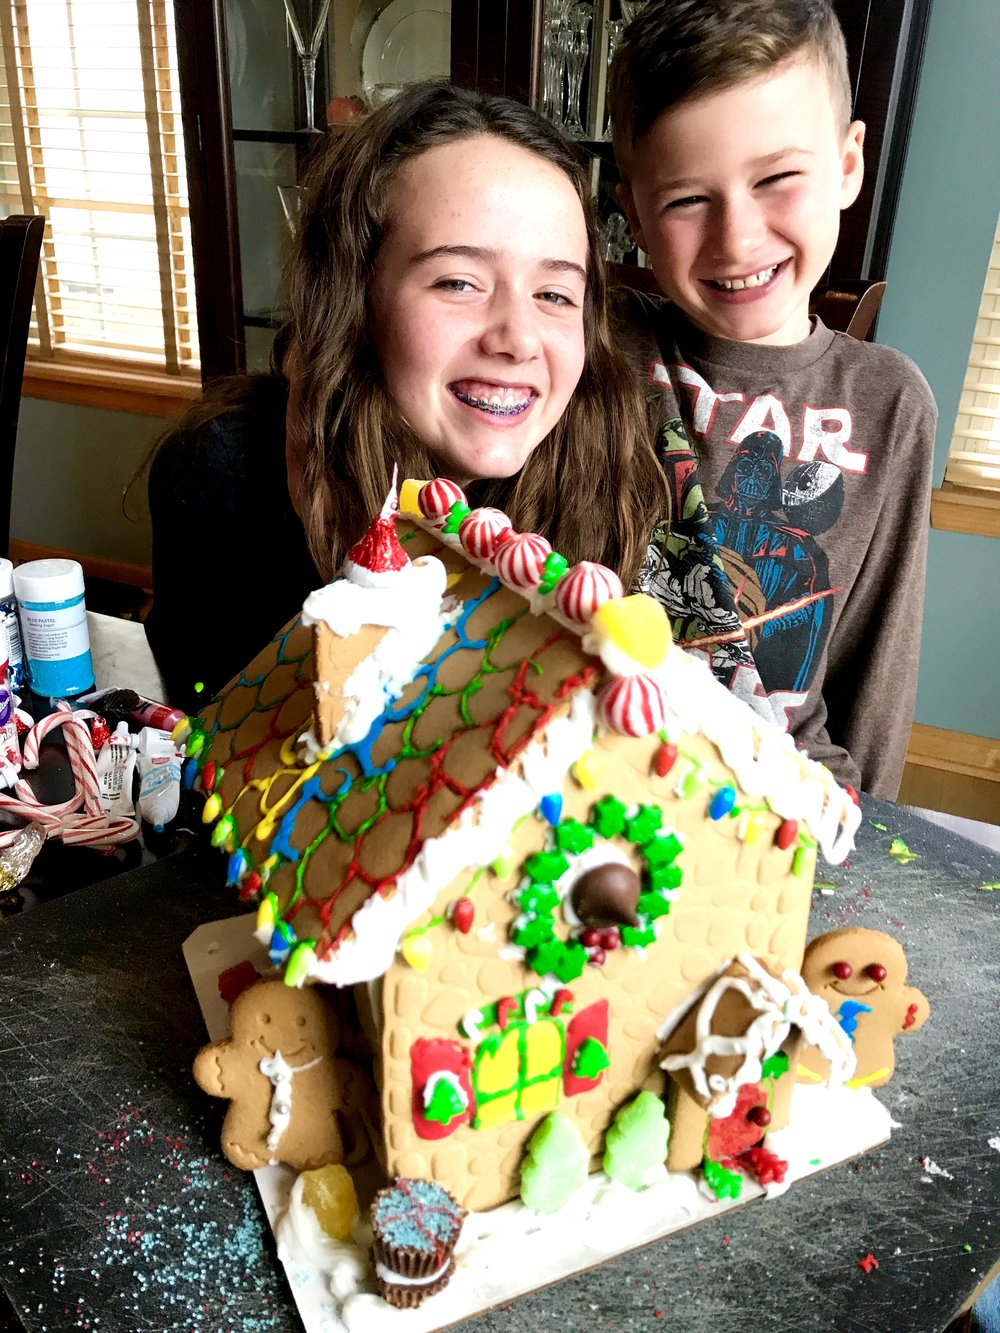 The kiddos with the gingerbread house (from a kit) they decorated together. Love those smiles!